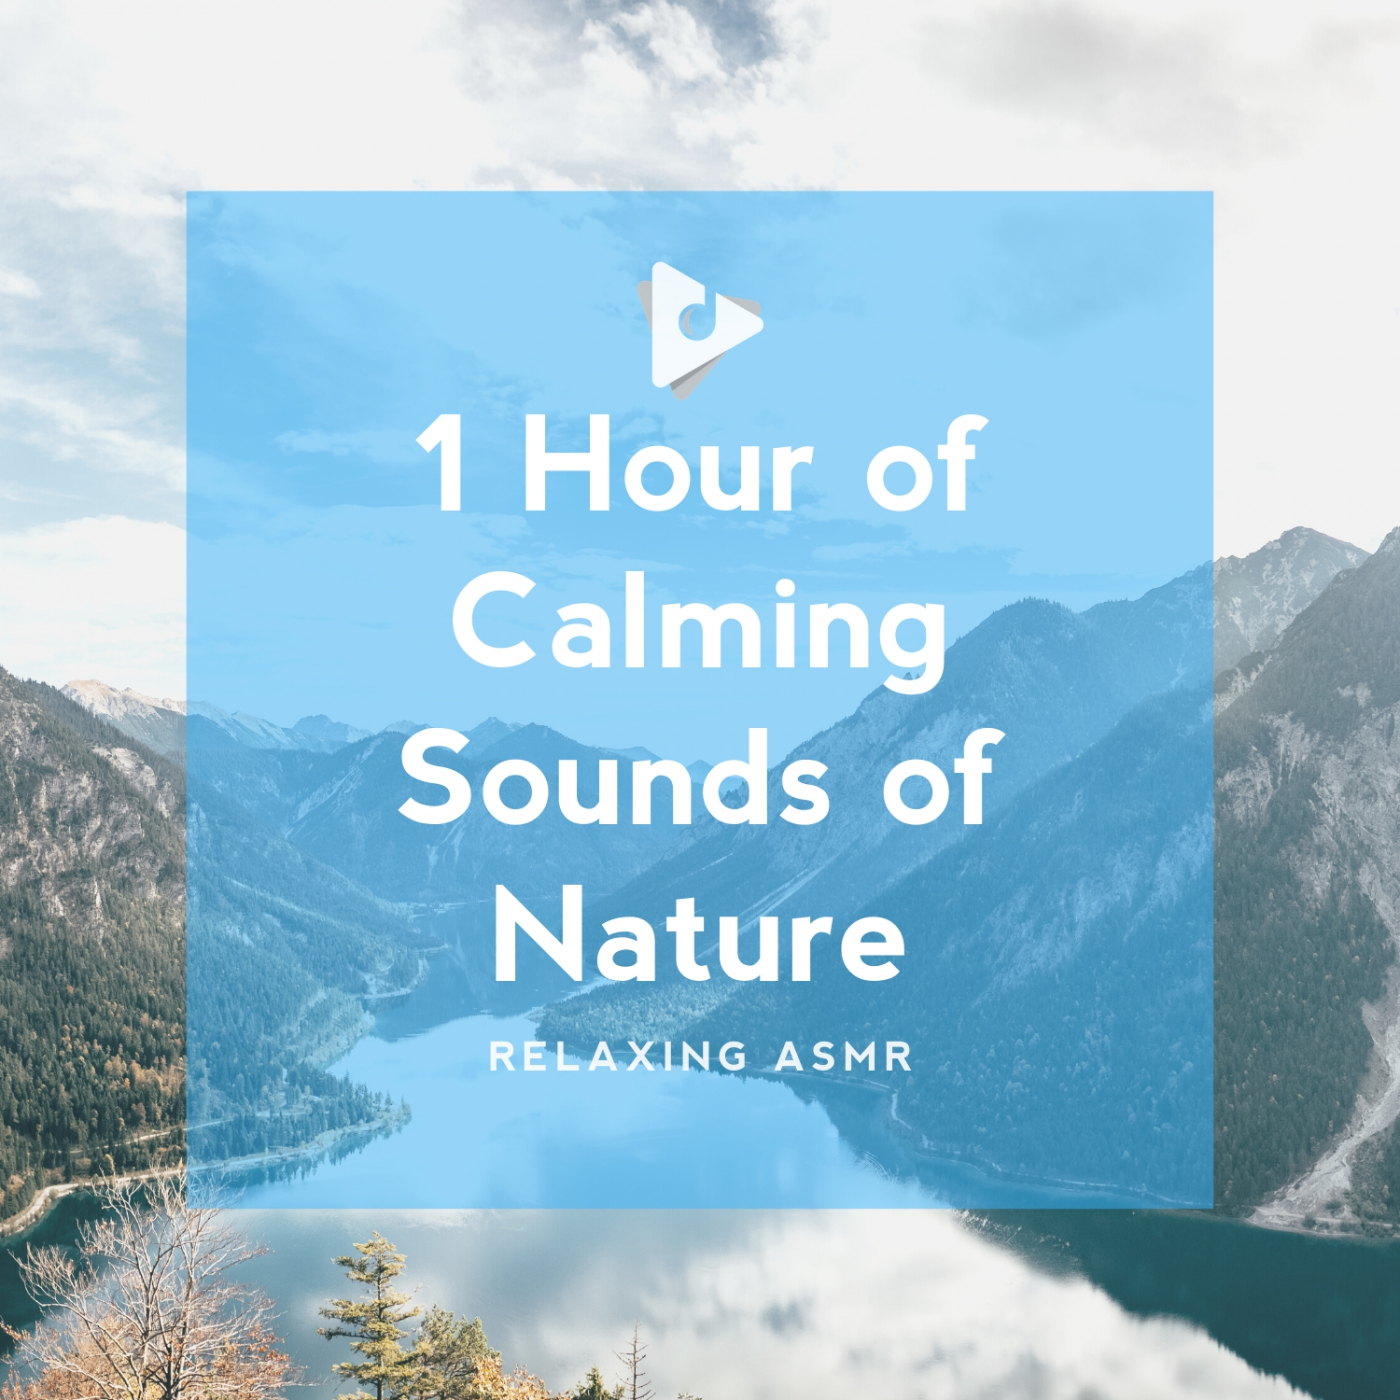 1 Hour of Calming Sounds of Nature